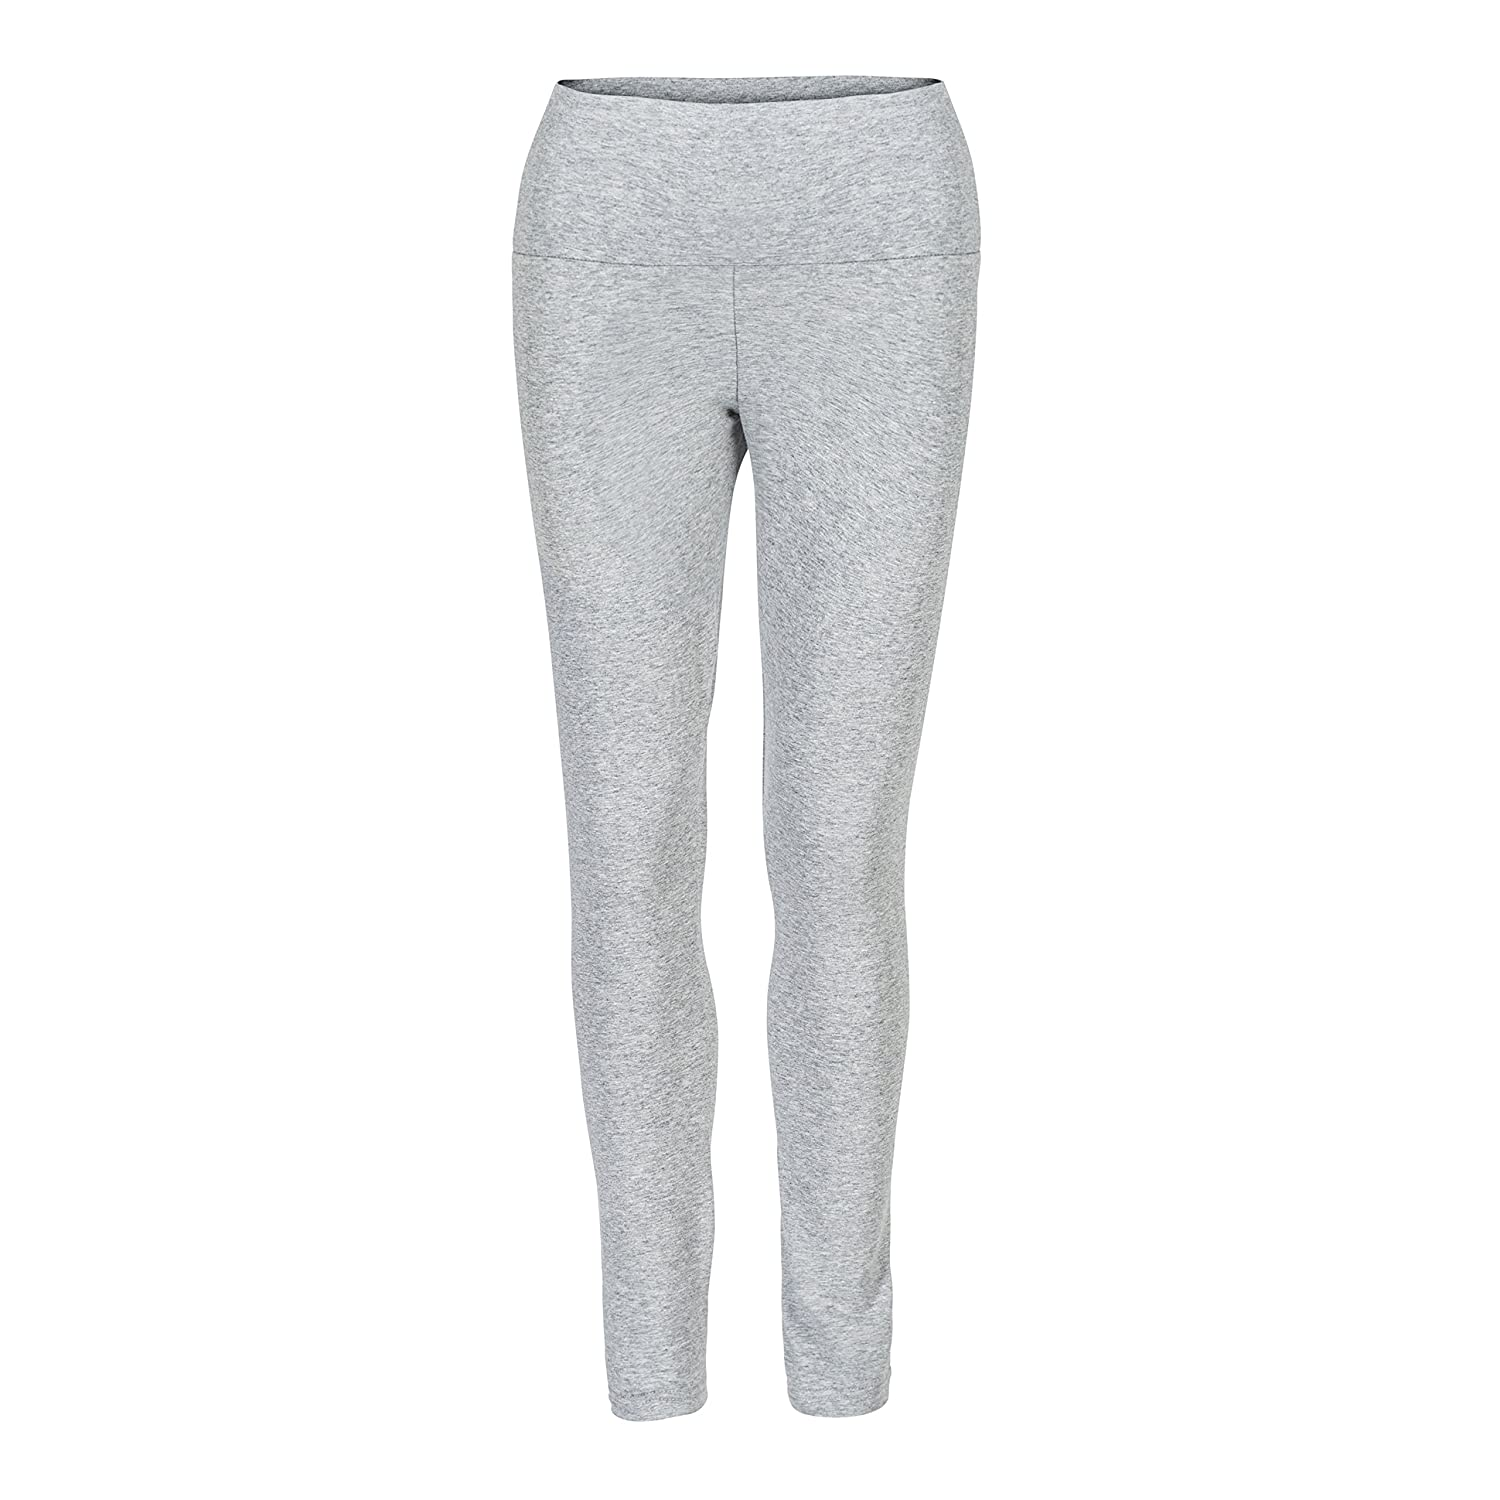 a63a4544f09ba The best way to do it is by wearing these awesome cotton spandex leggings!  Keeps you super cool and flatters your figure. The best part of this deal?